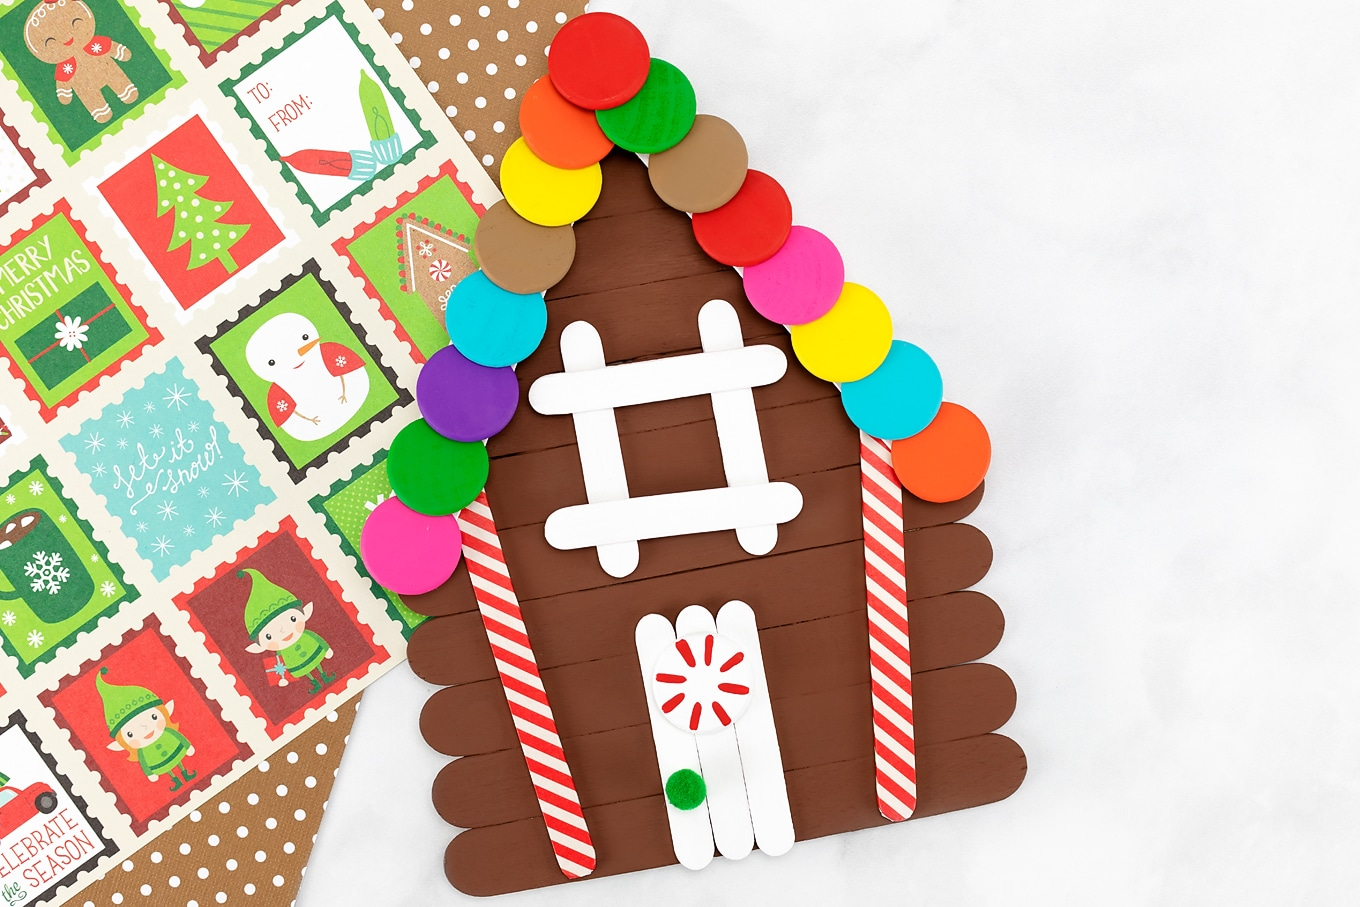 How to Make a Popsicle Stick Gingerbread House